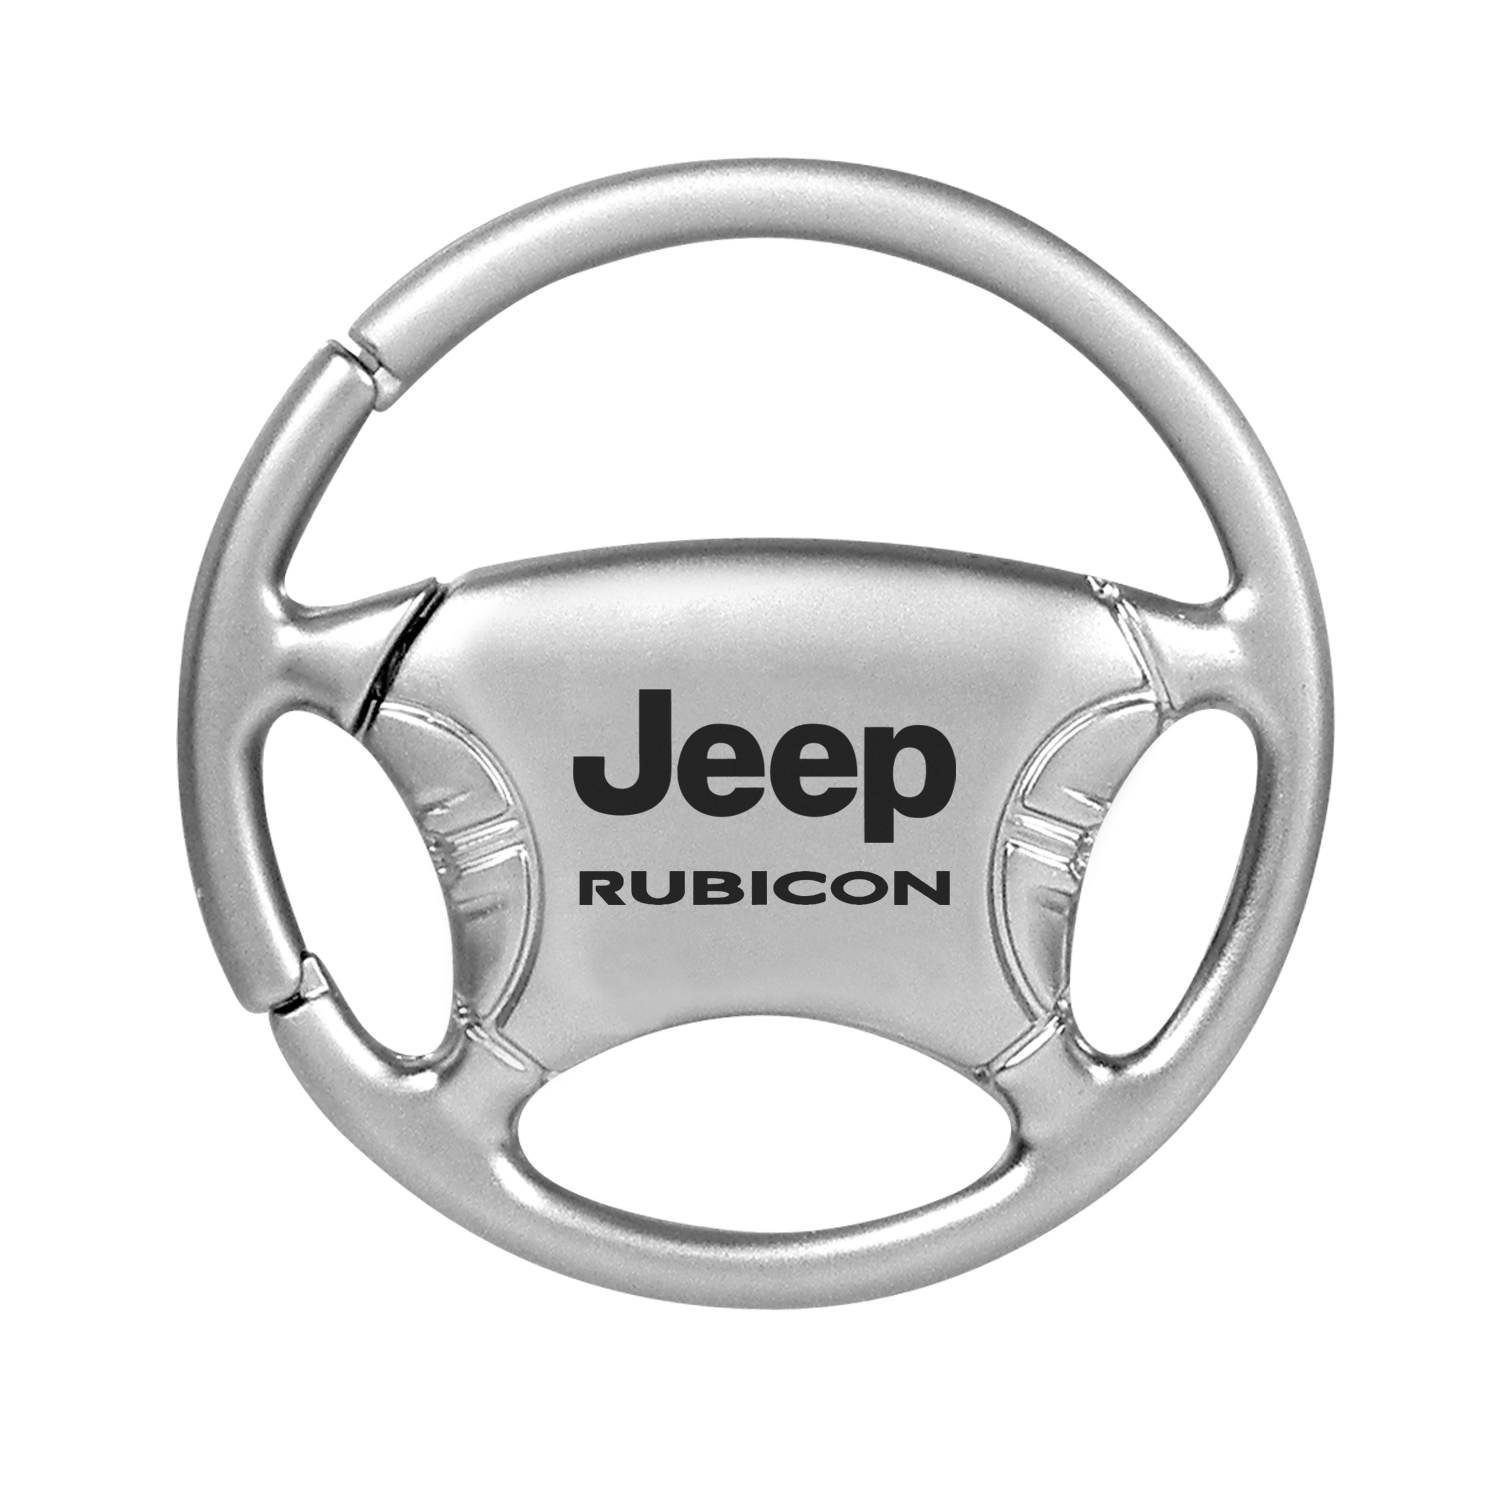 Jeep Rubicon Silver Steering Wheel Key Chain